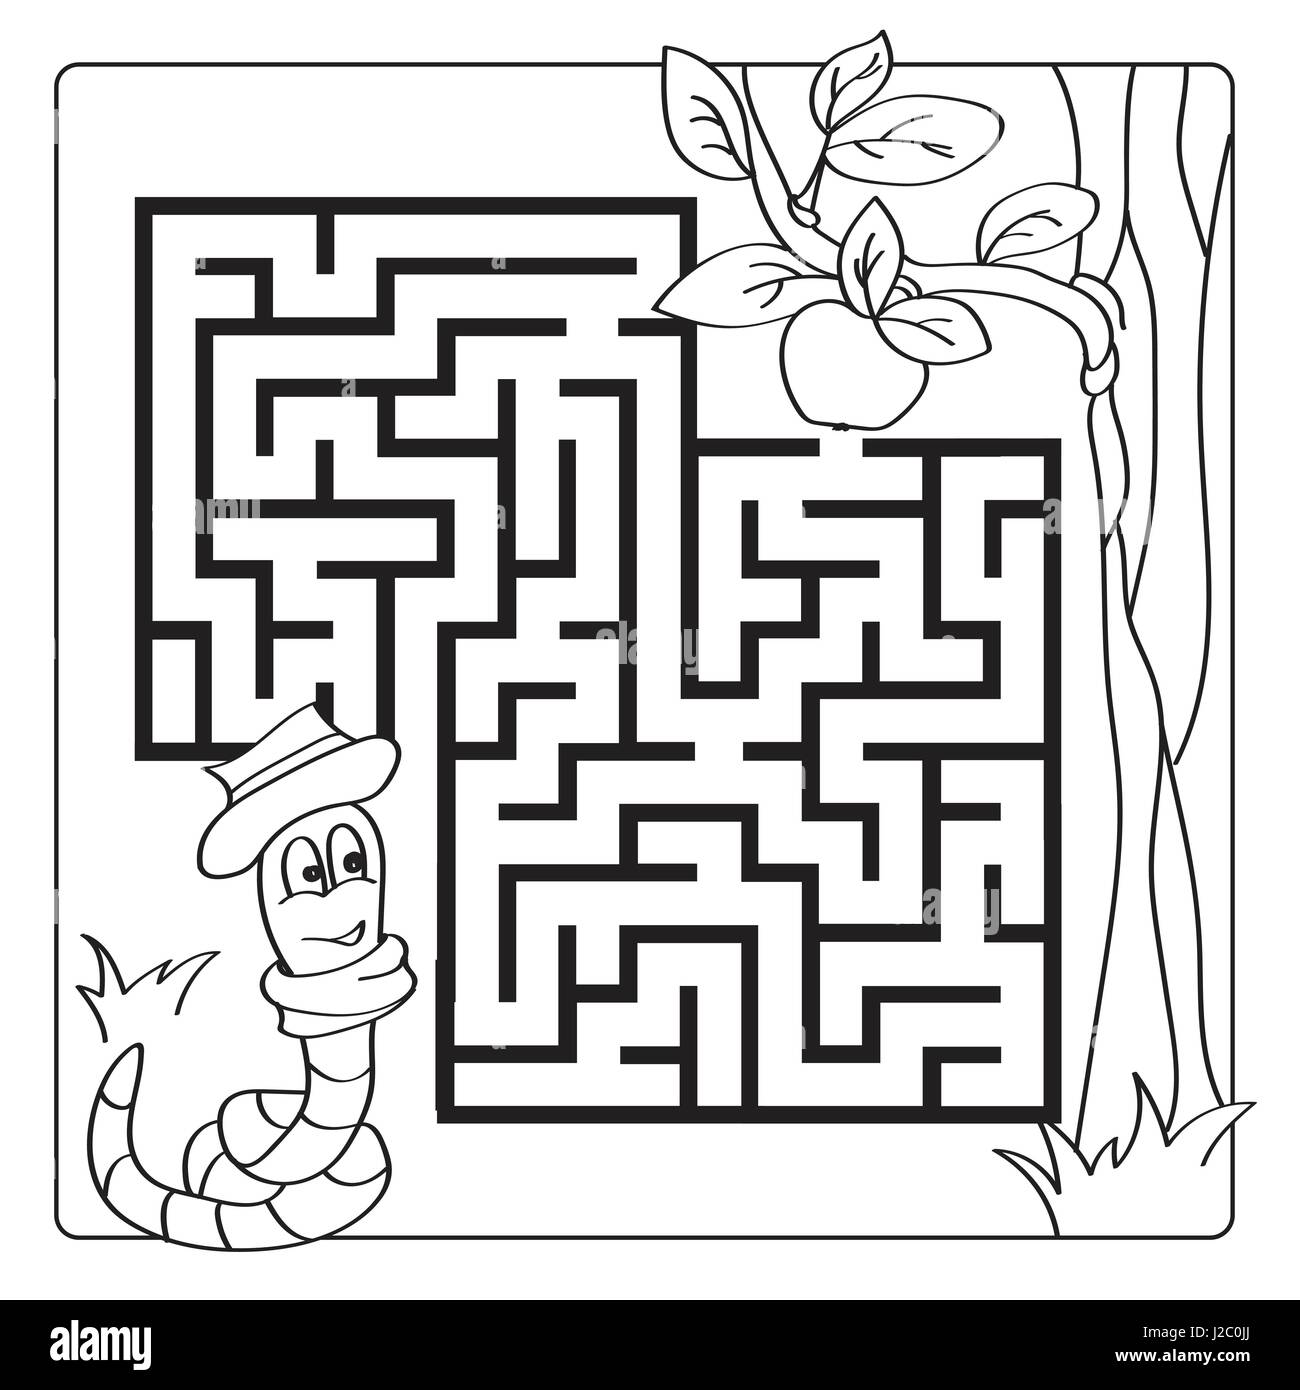 Labyrinth Maze For Kids Entry And Exit Children Puzzle